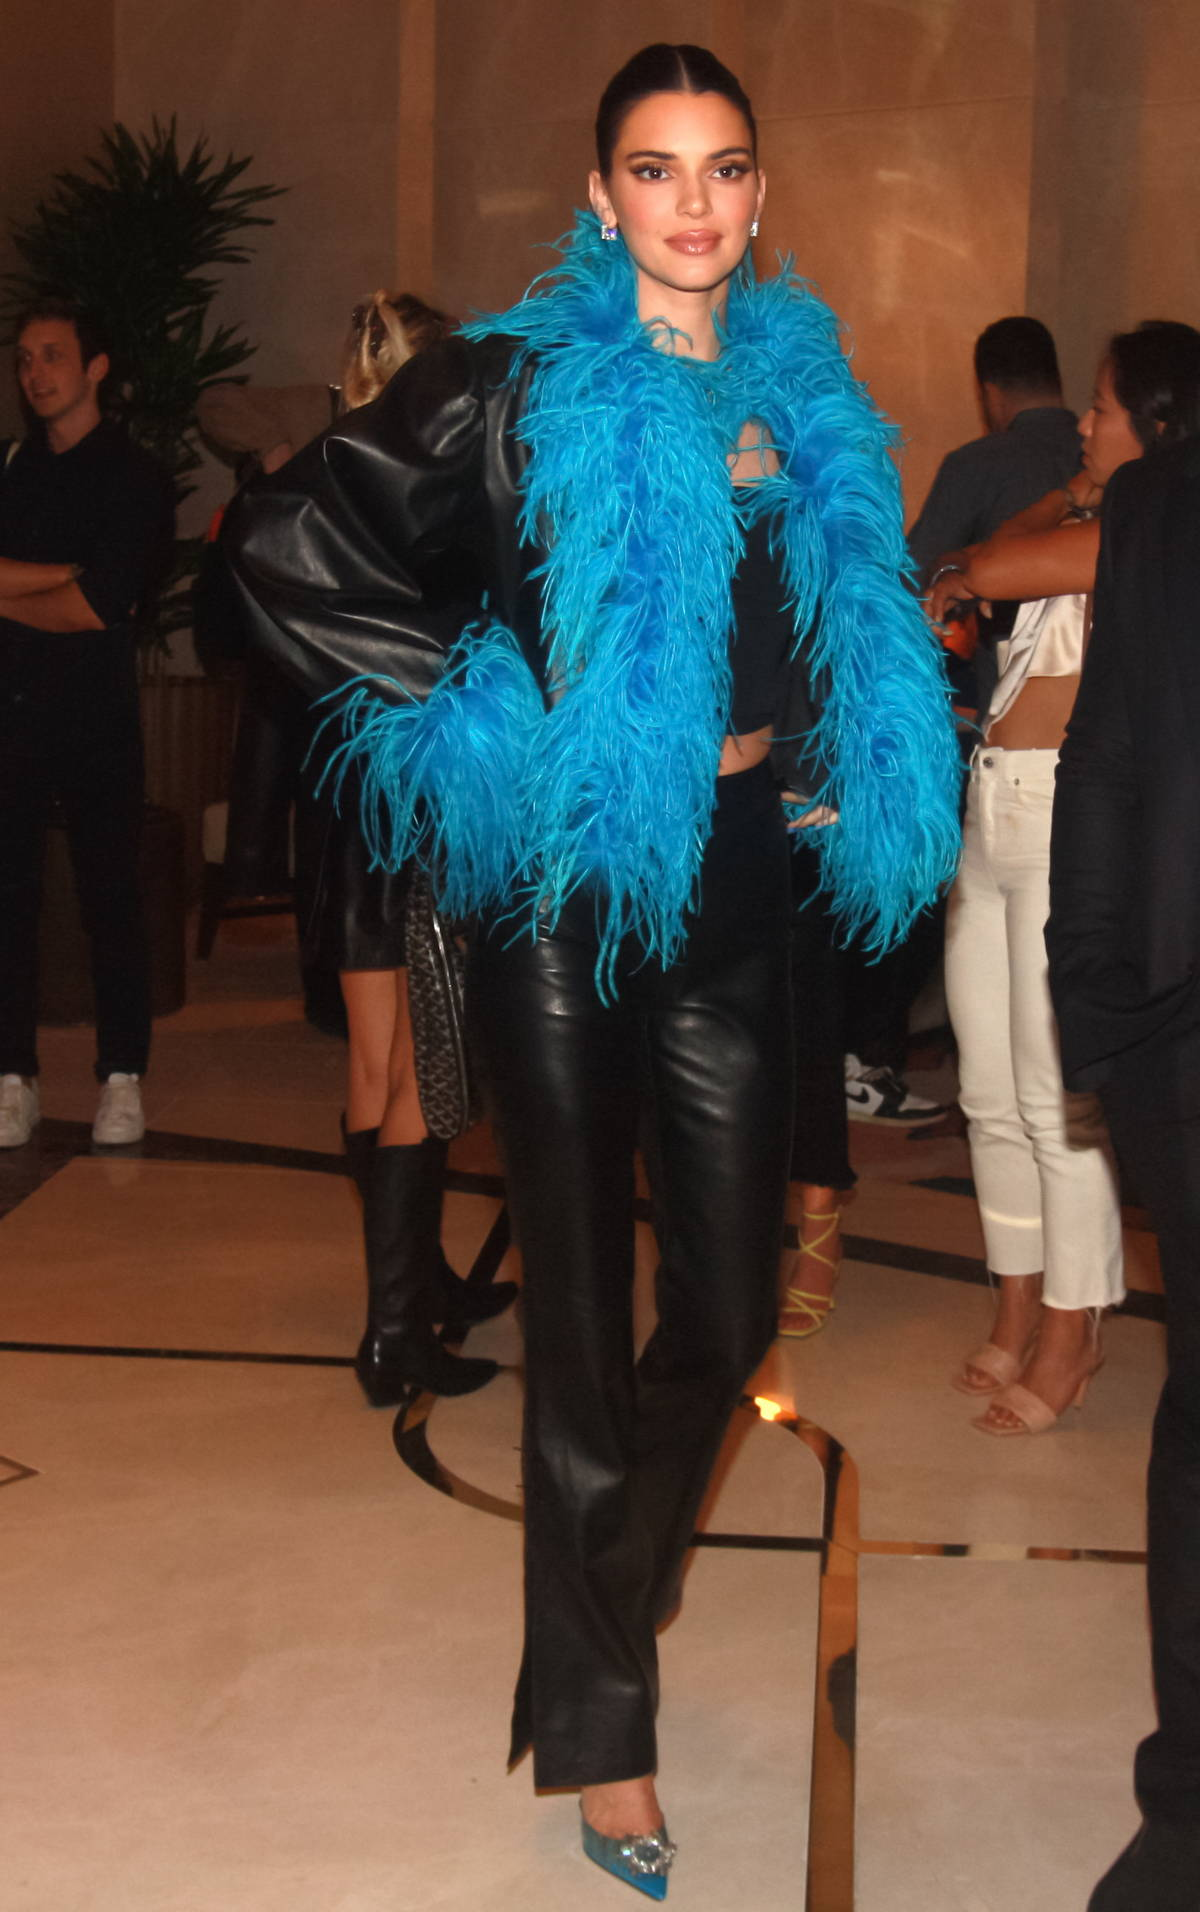 Kendall Jenner rocks a blue feather boa with a black top and leather pants while heading for a night out in Las Vegas, Nevada